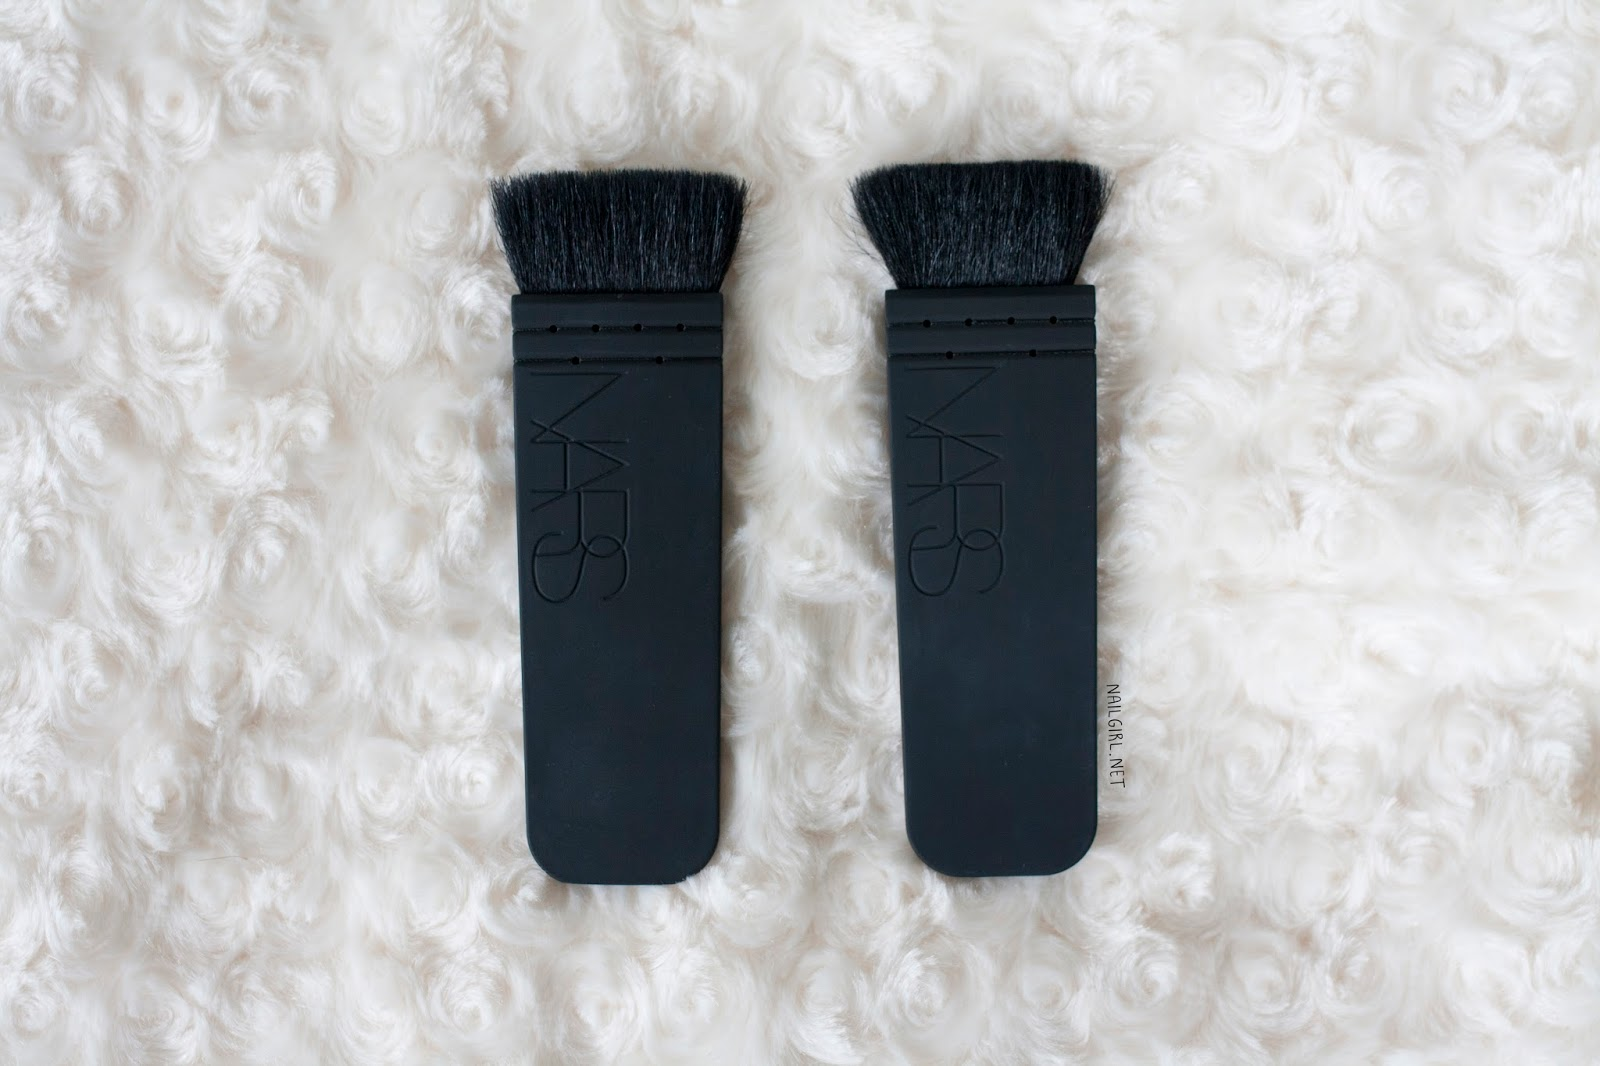 nars ita authentic vs fake brush